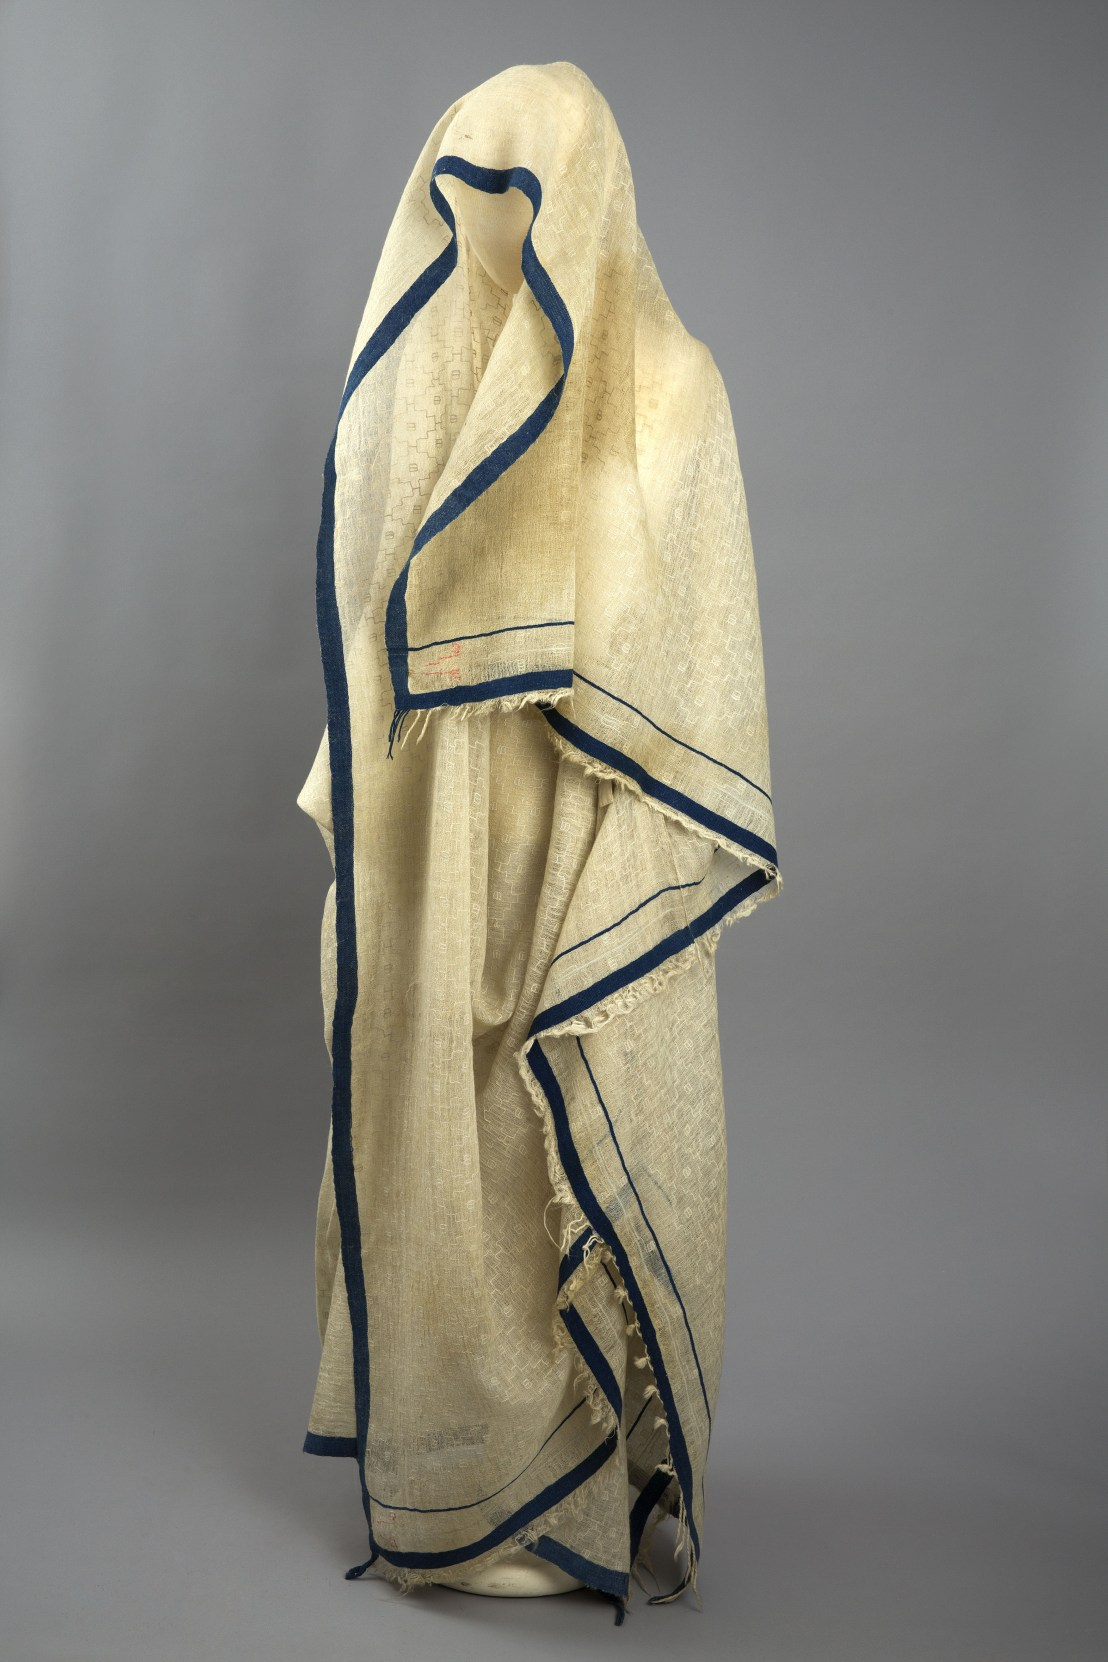 Armenian female blanket, late 19th century. – The Russian Museum of Ethnography